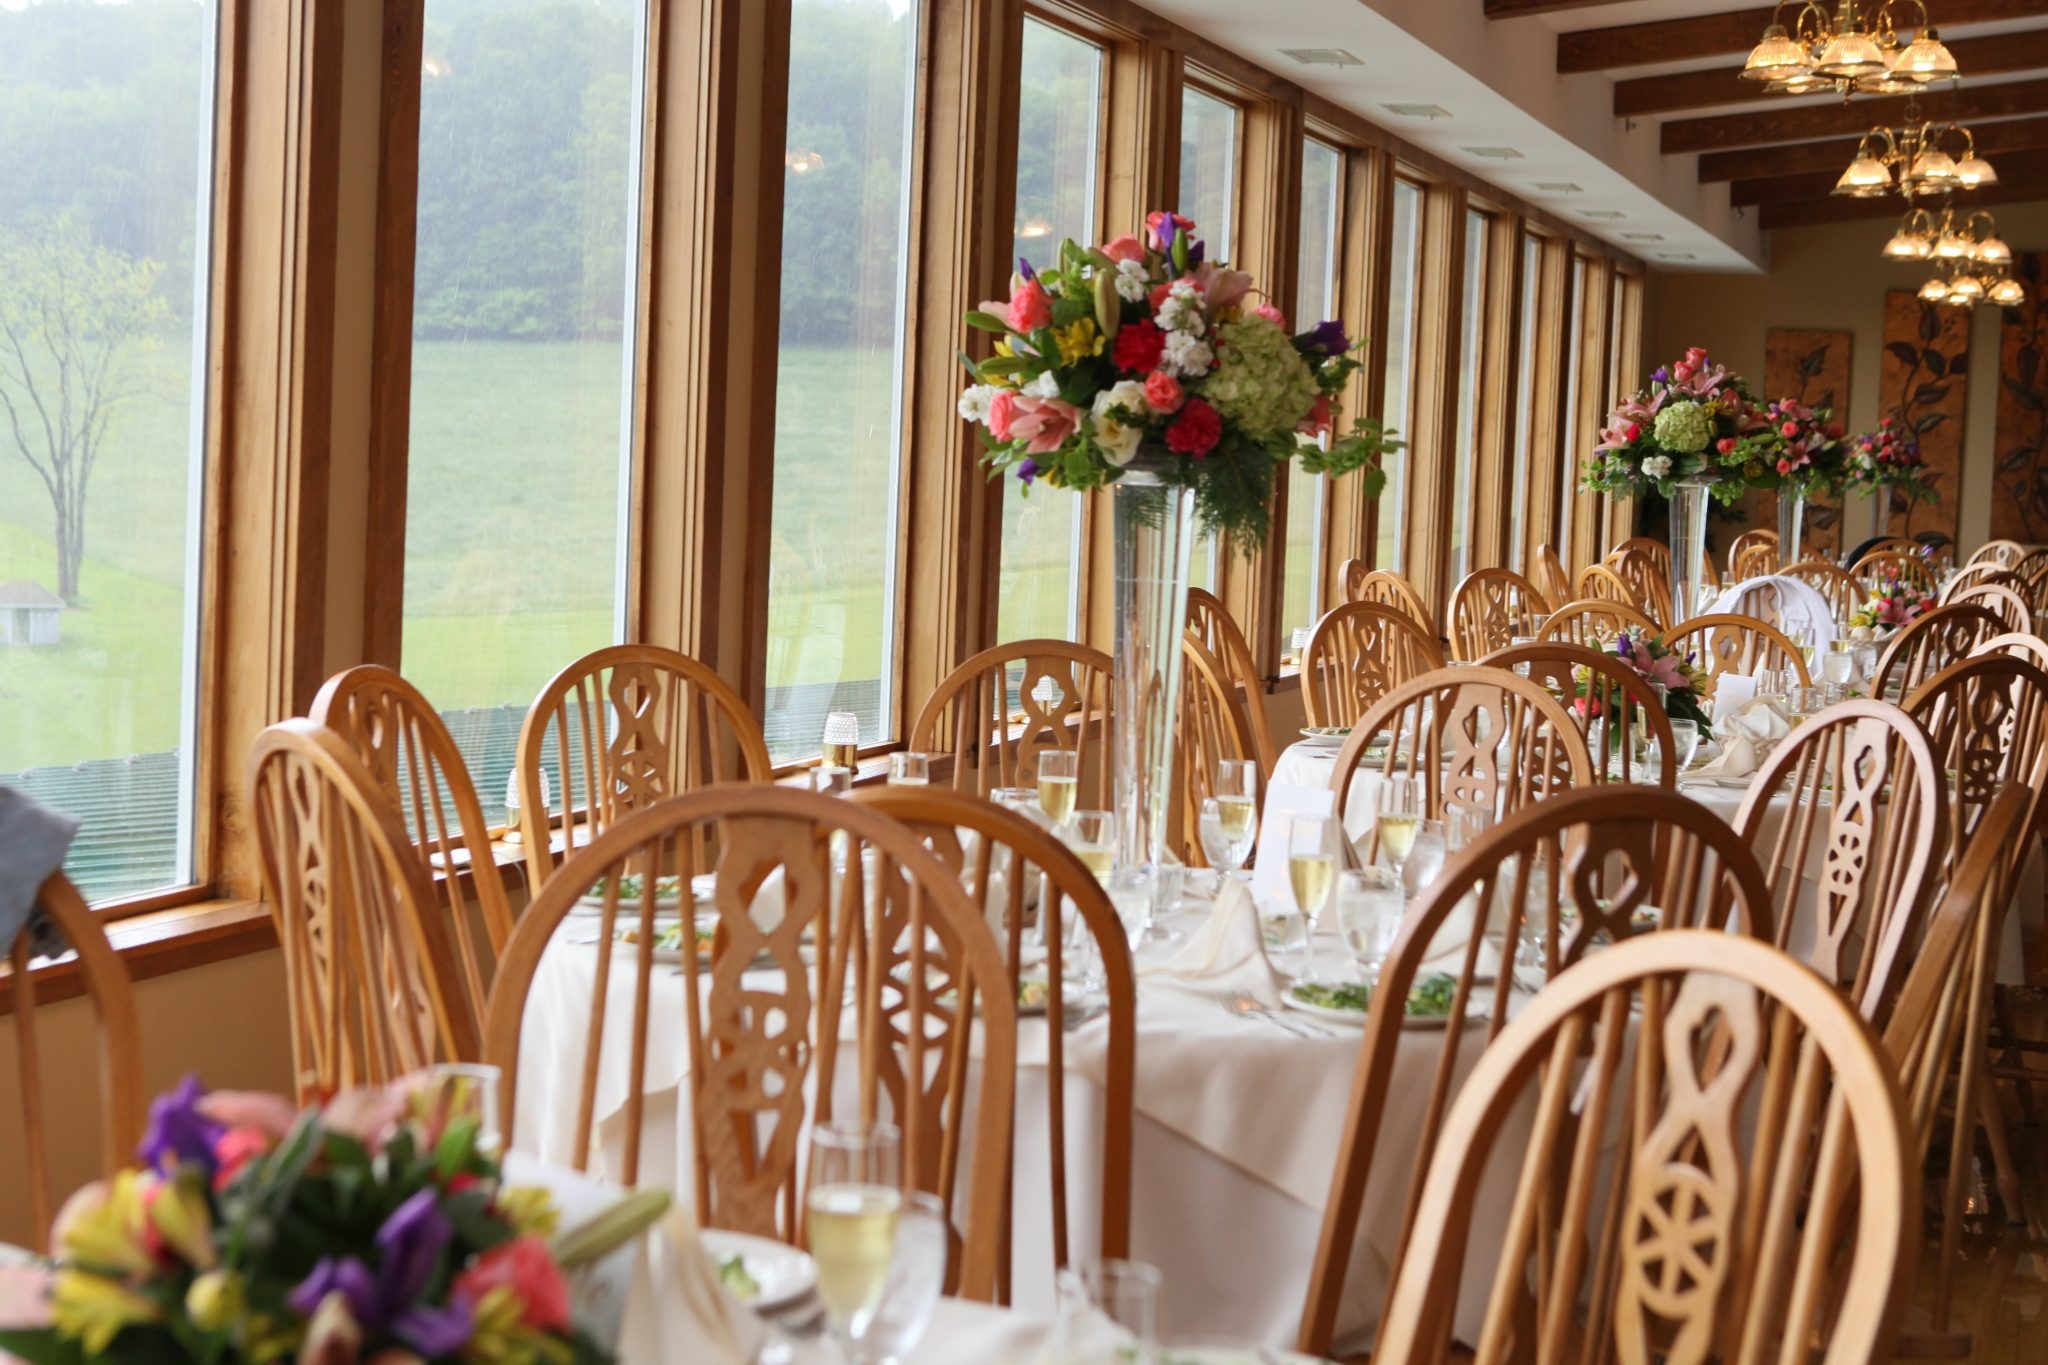 Wedding receptions in Frederick Maryland are held at Morningside Inn